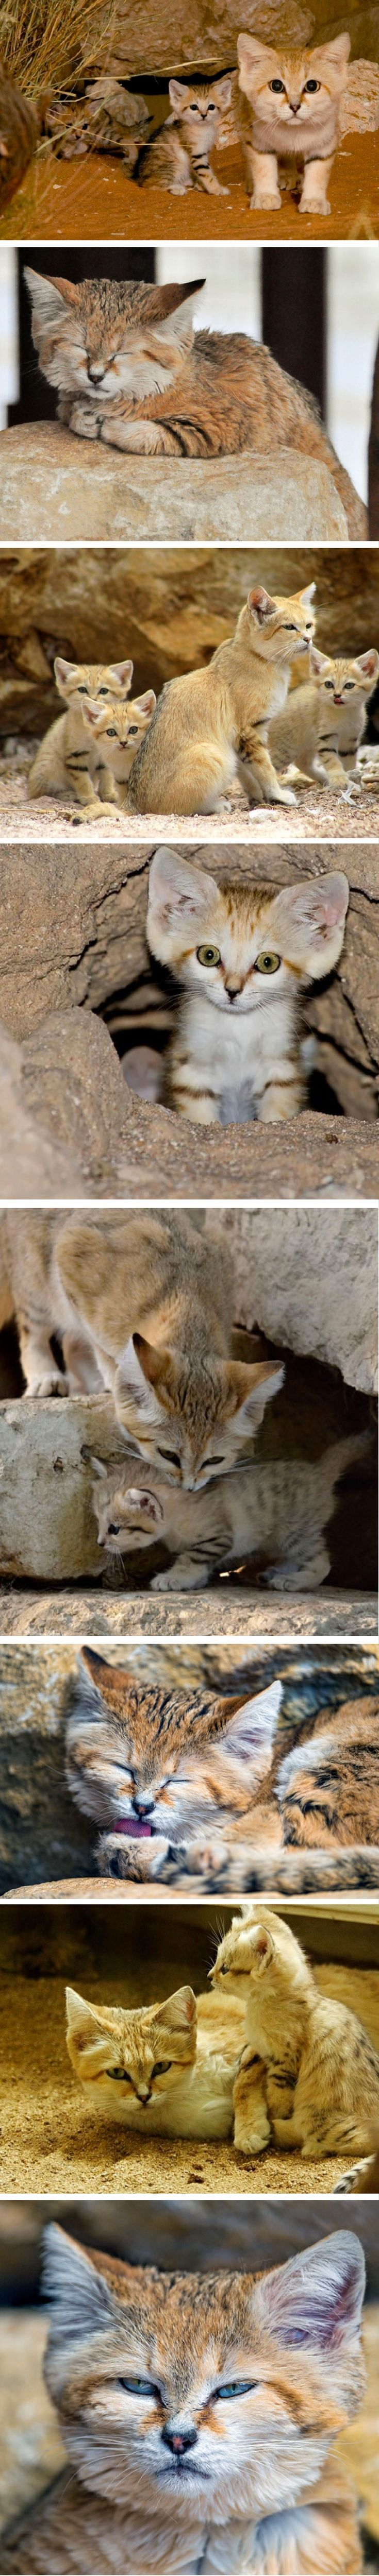 Sand cats are the Peter Pan of felines: they retain a kitten-like appearance their whole lives, giving the impression that they never grow up. Although they live in the desert Areas of North Africa, Arabia, Central Asia, and Pakistan, they are considered near threatened due to the illegal pet trade and sport hunting.